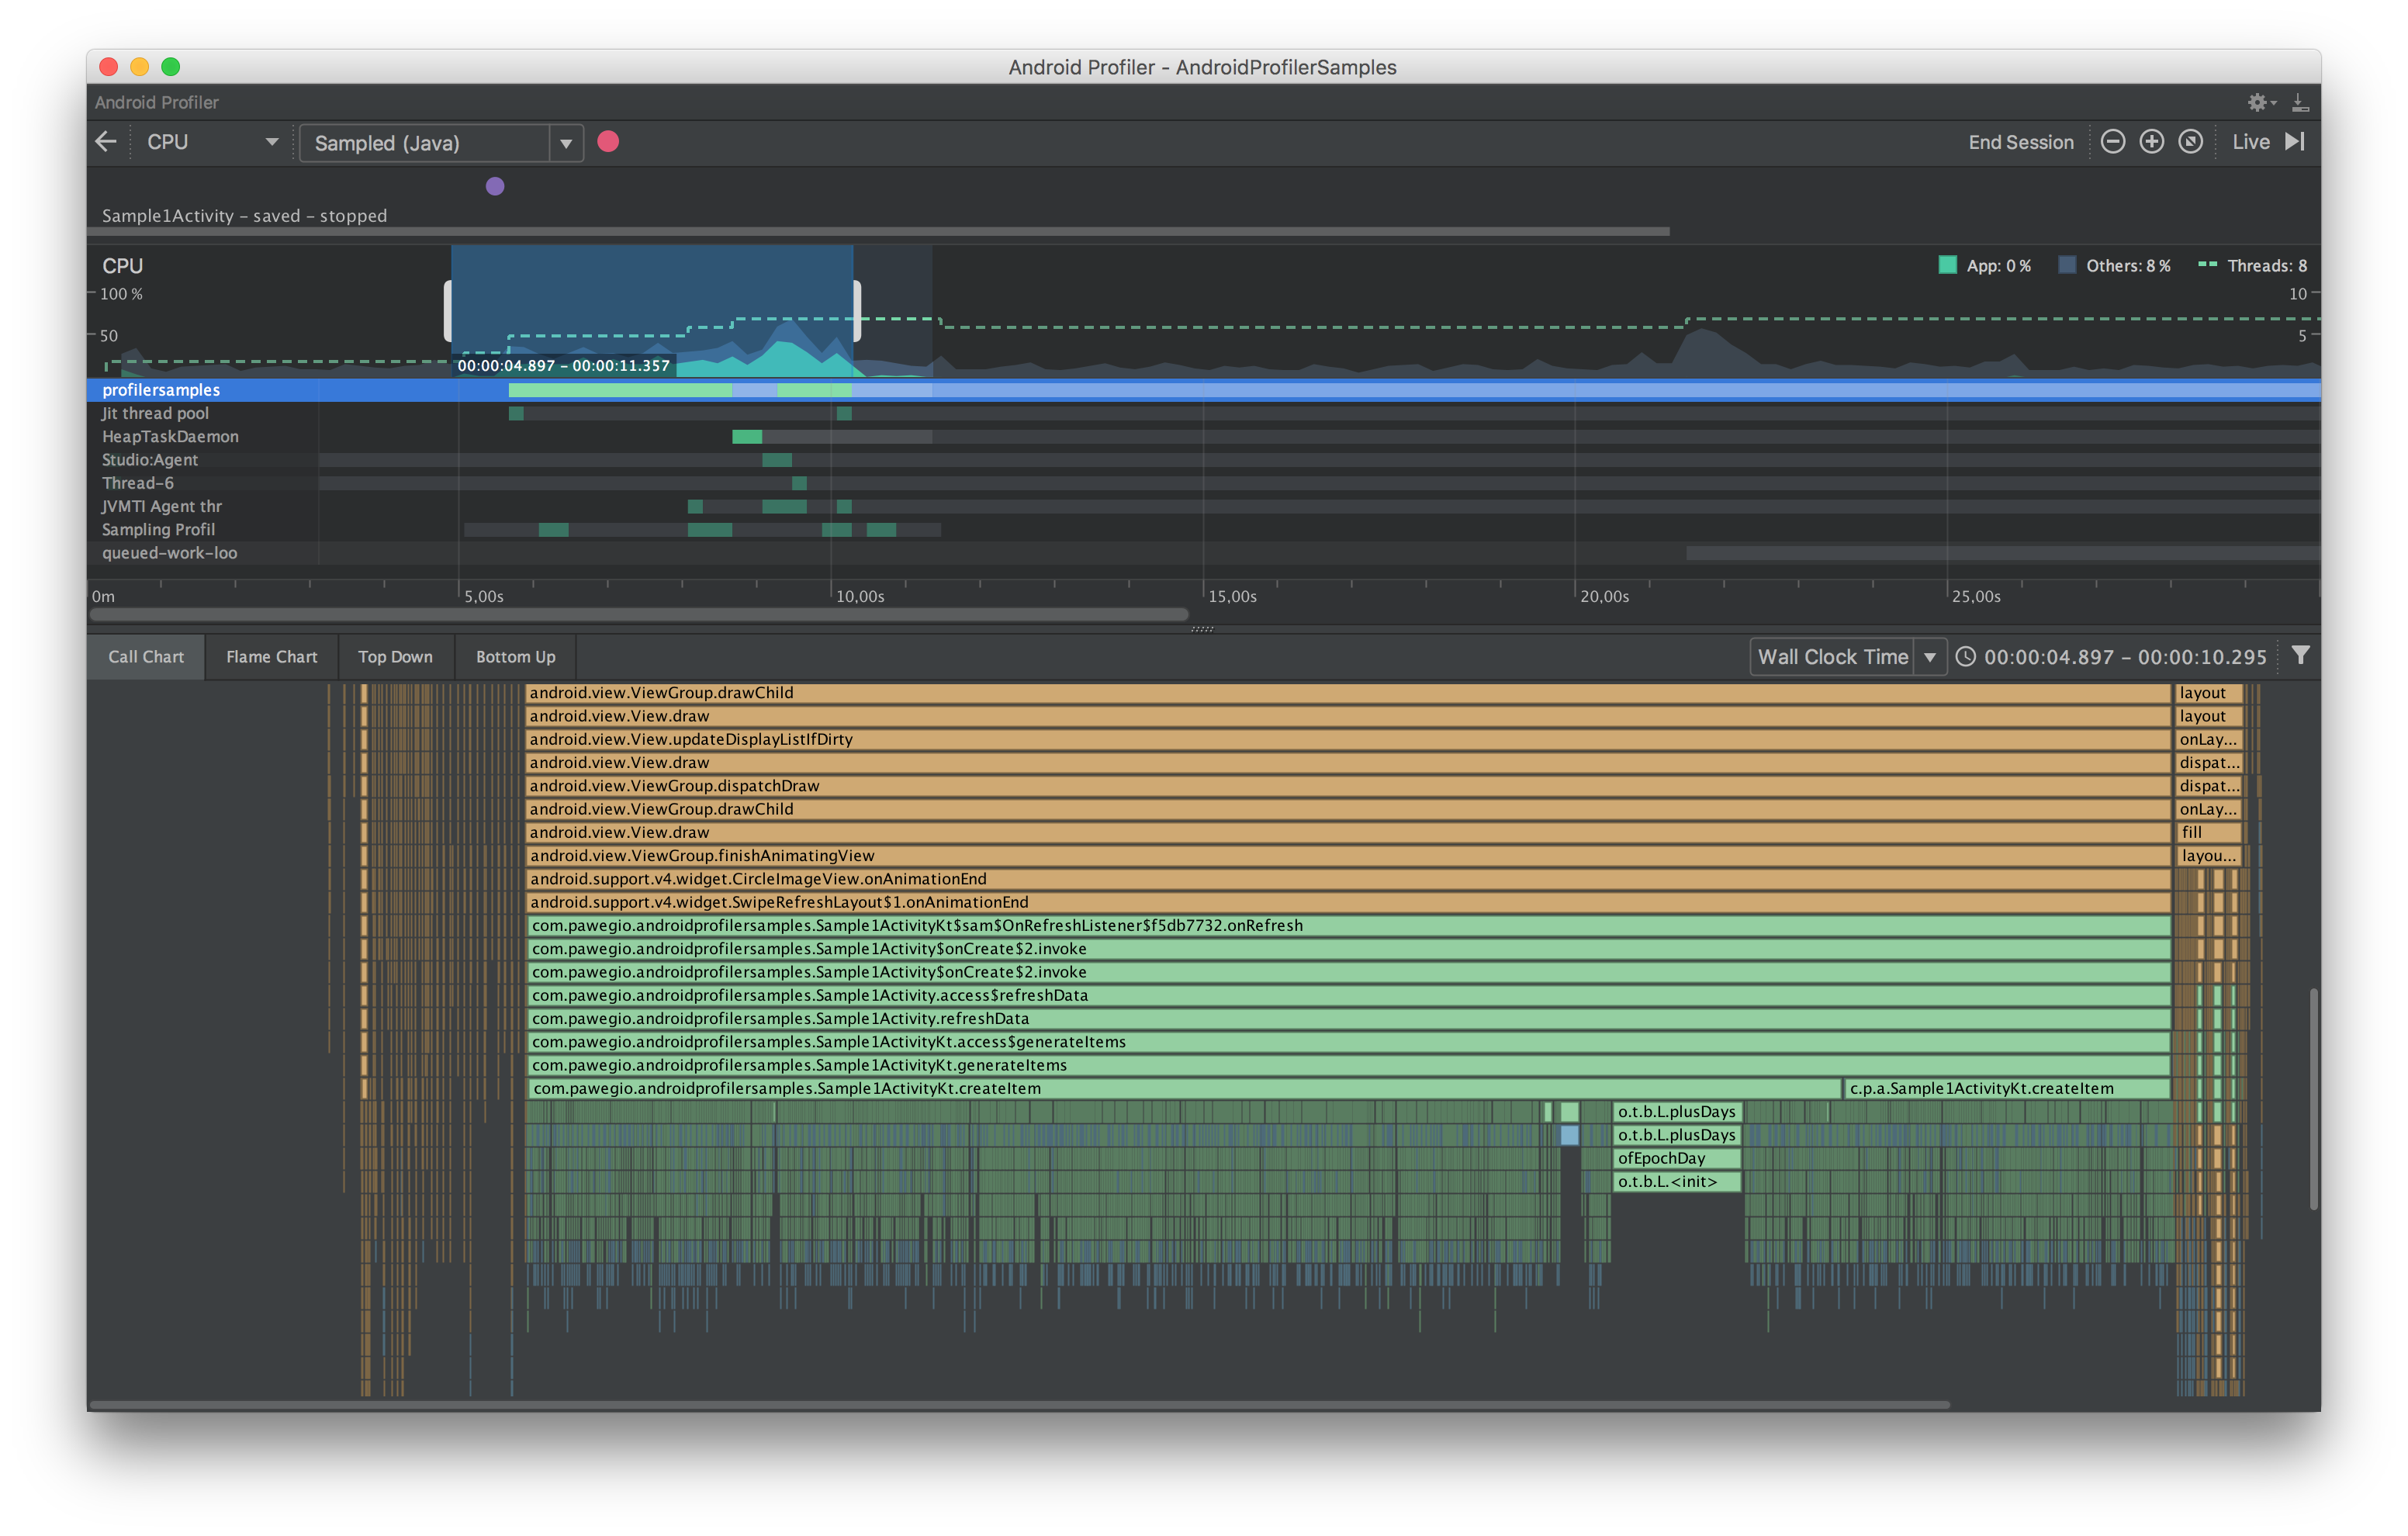 Speed Up Your App Performance with Android Profiler